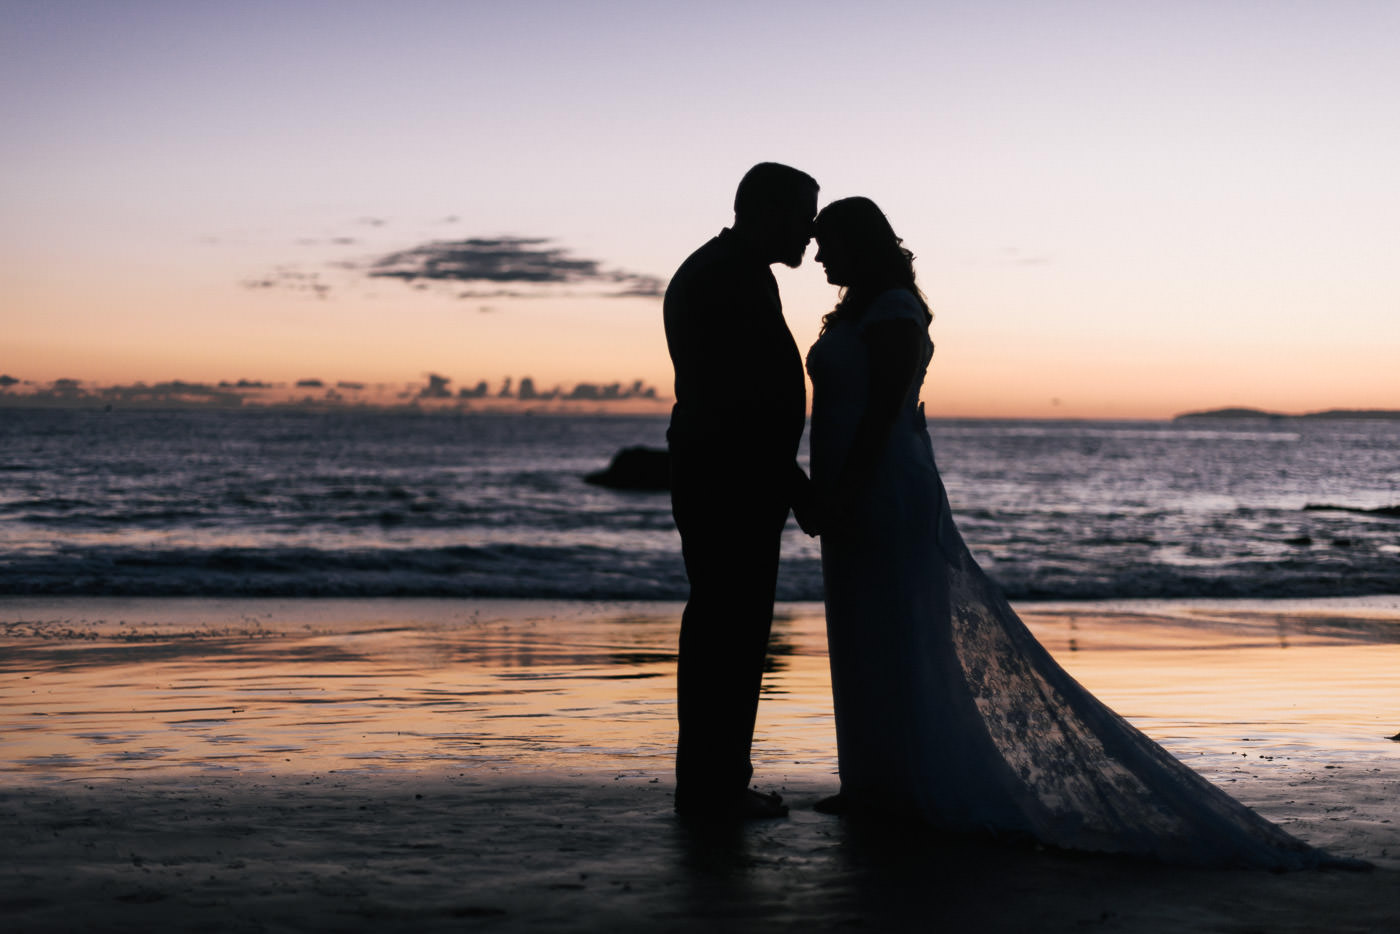 Sillhouetted couple gets close for a stunning wedding photo in Laguna Beach.